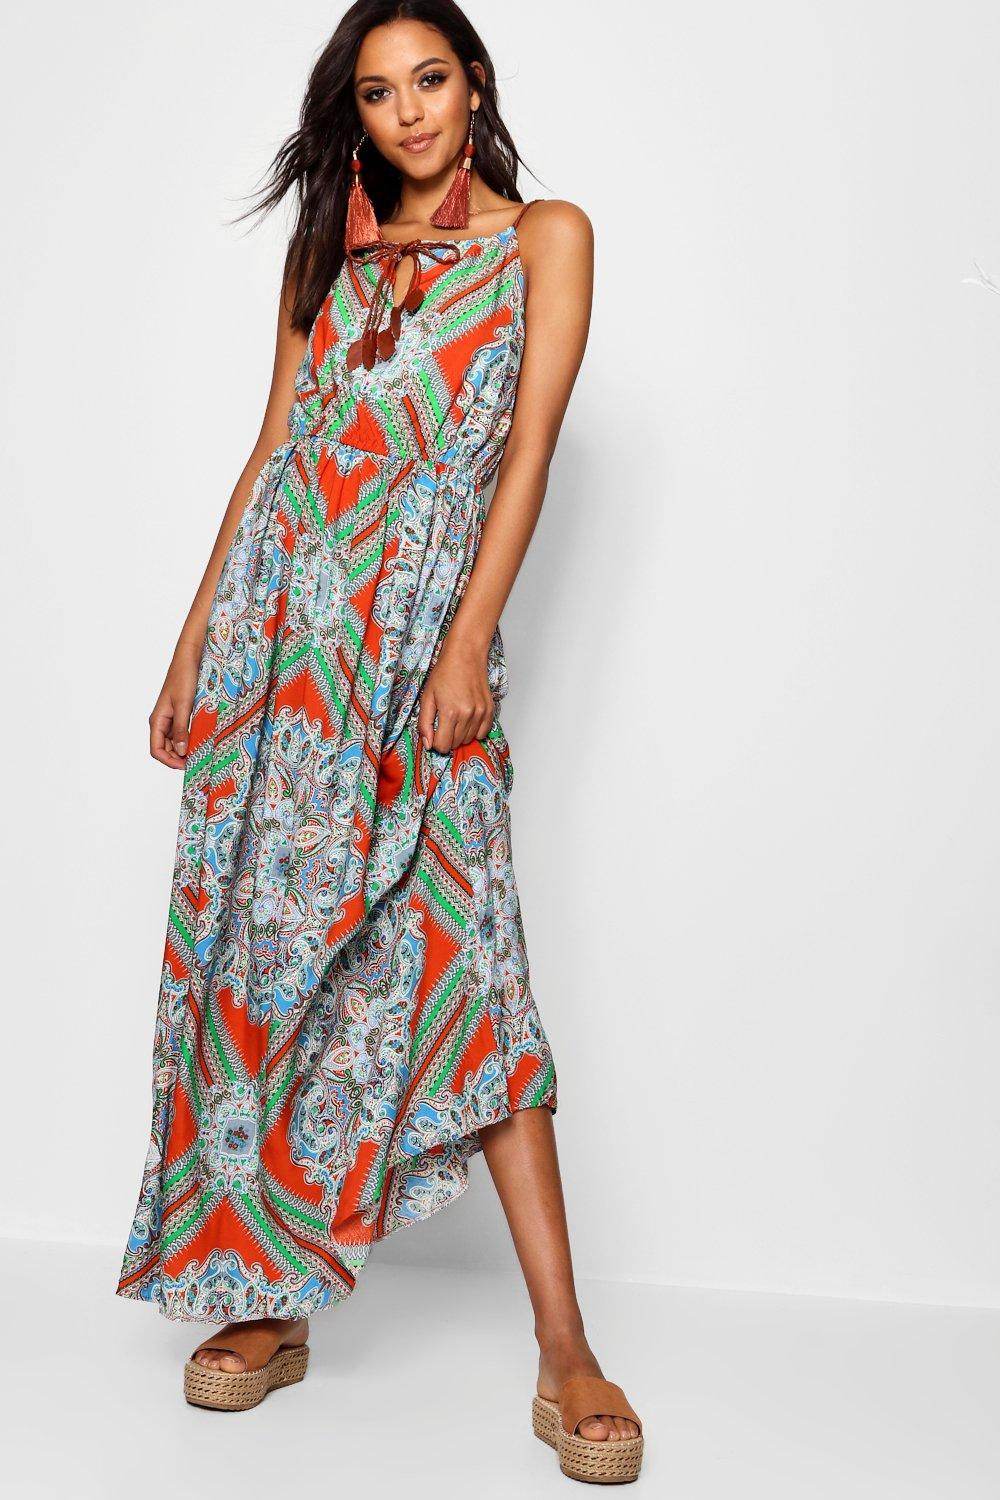 Discover the latest dresses with ASOS. From party, midi, long sleeved and maxi dresses to going out dresses. Shop from thousands of dresses with ASOS.